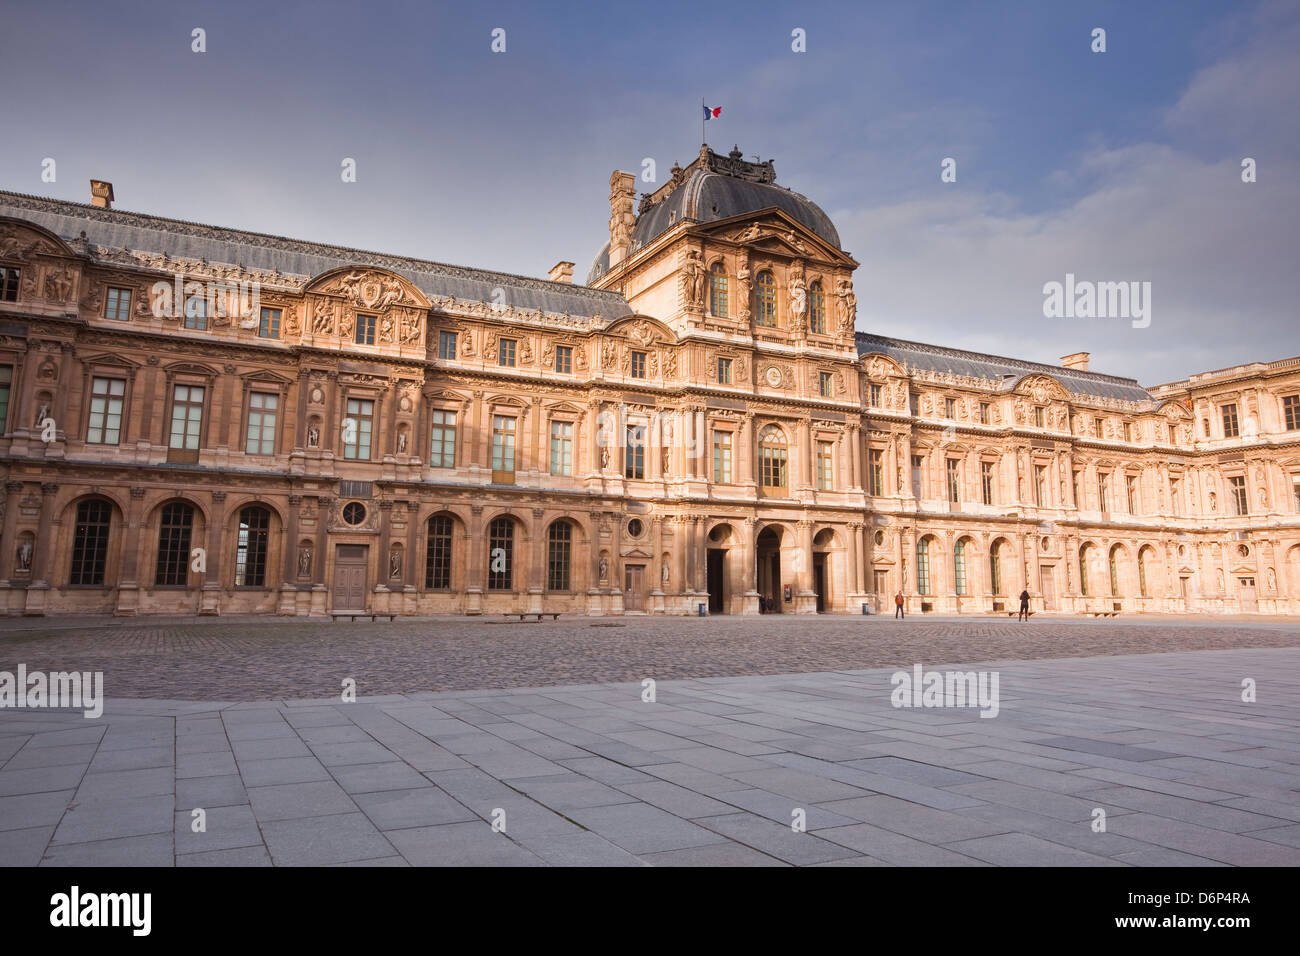 The Musee Louvre in Paris, France, Europe - Stock Image